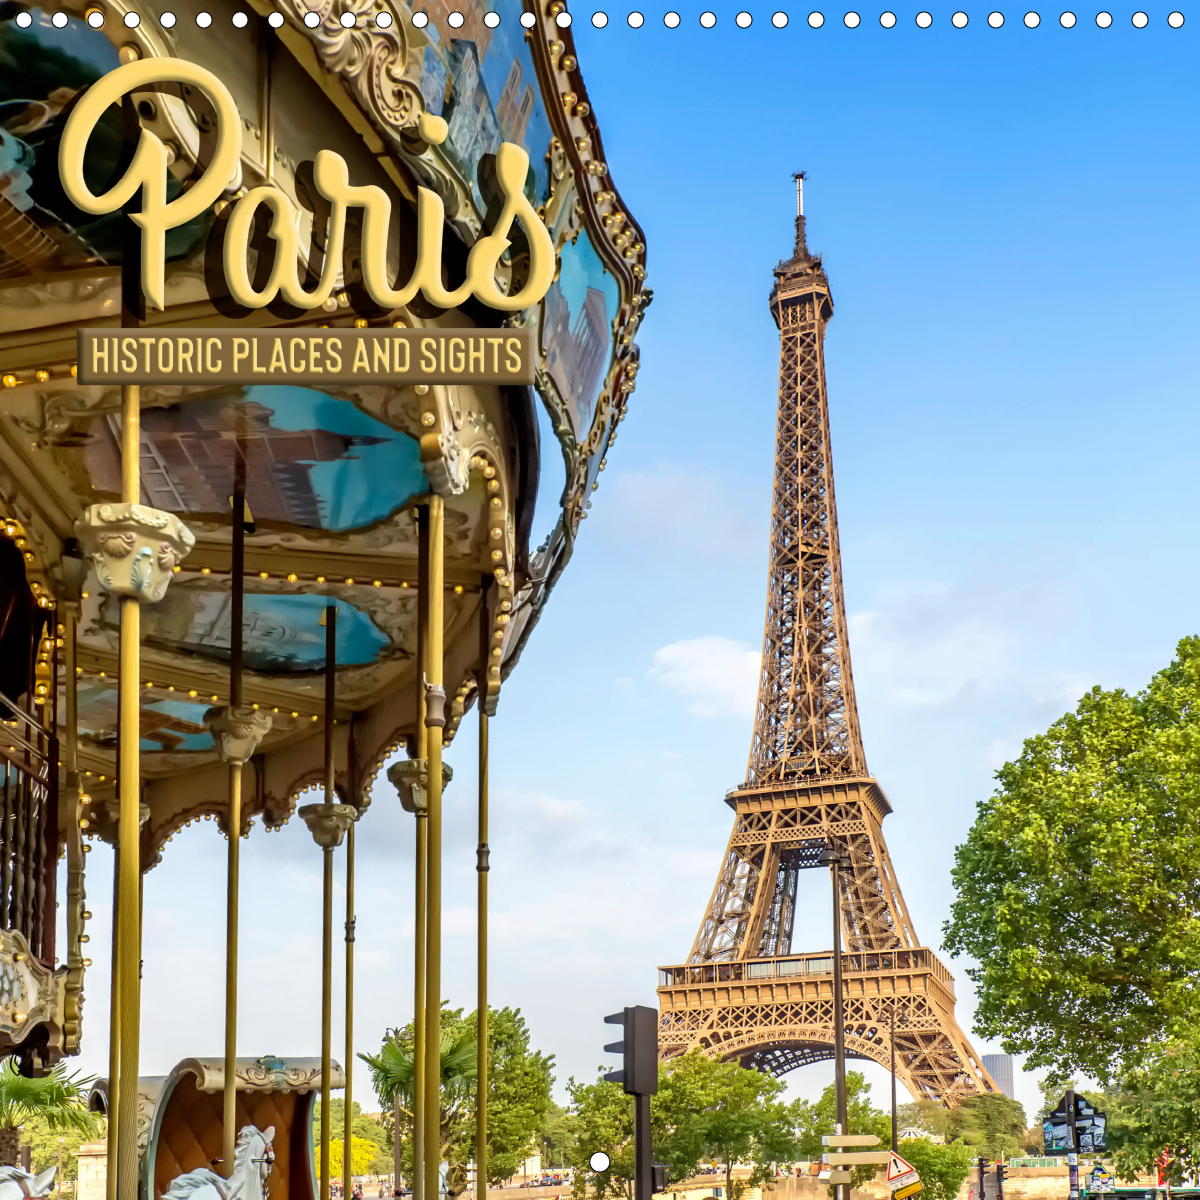 Calendar front - PARIS Historic places and sights